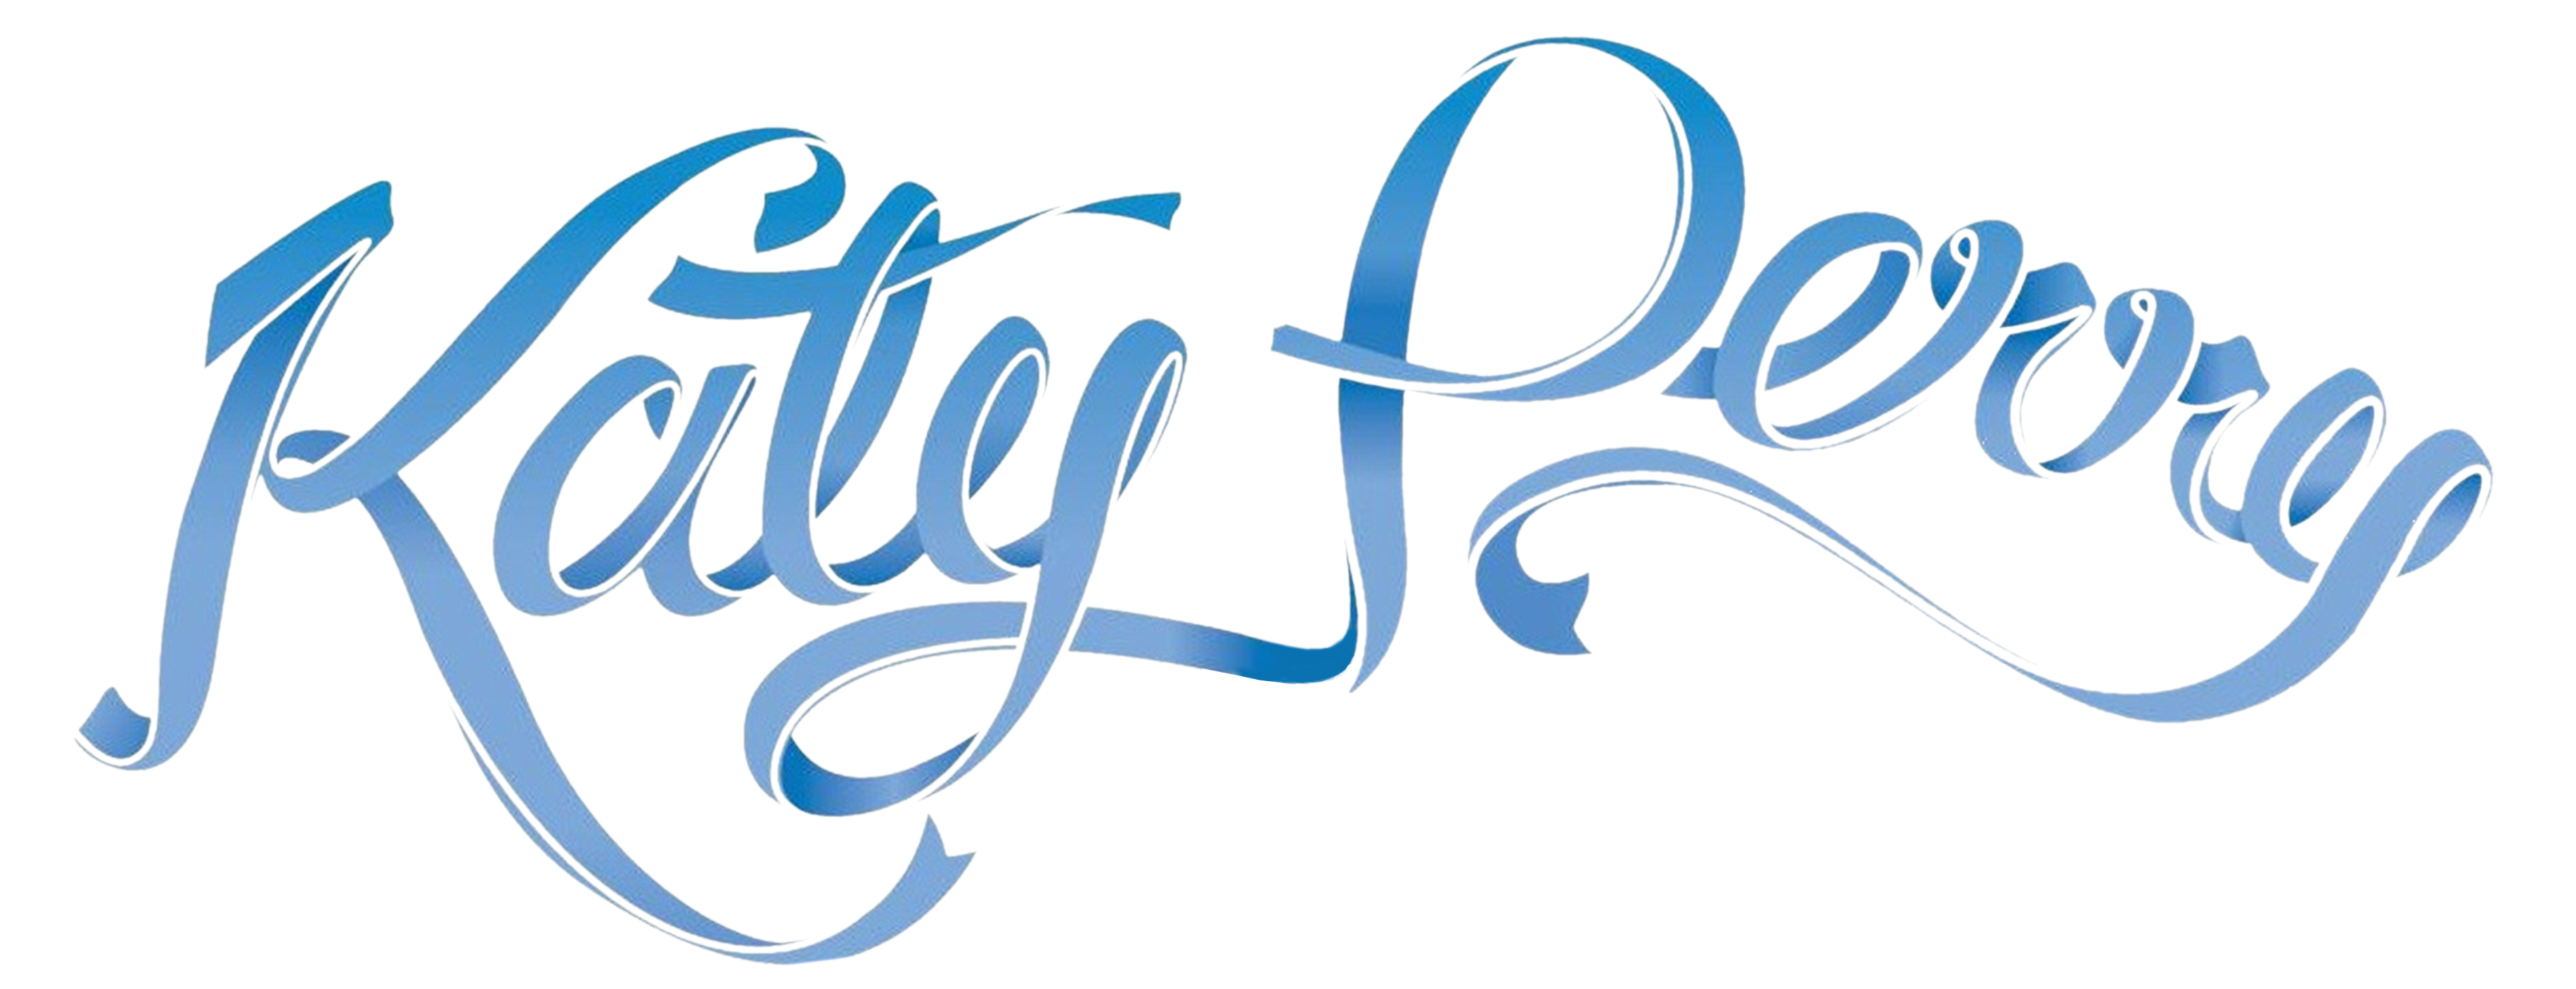 Katy Perry Prism Logo Font